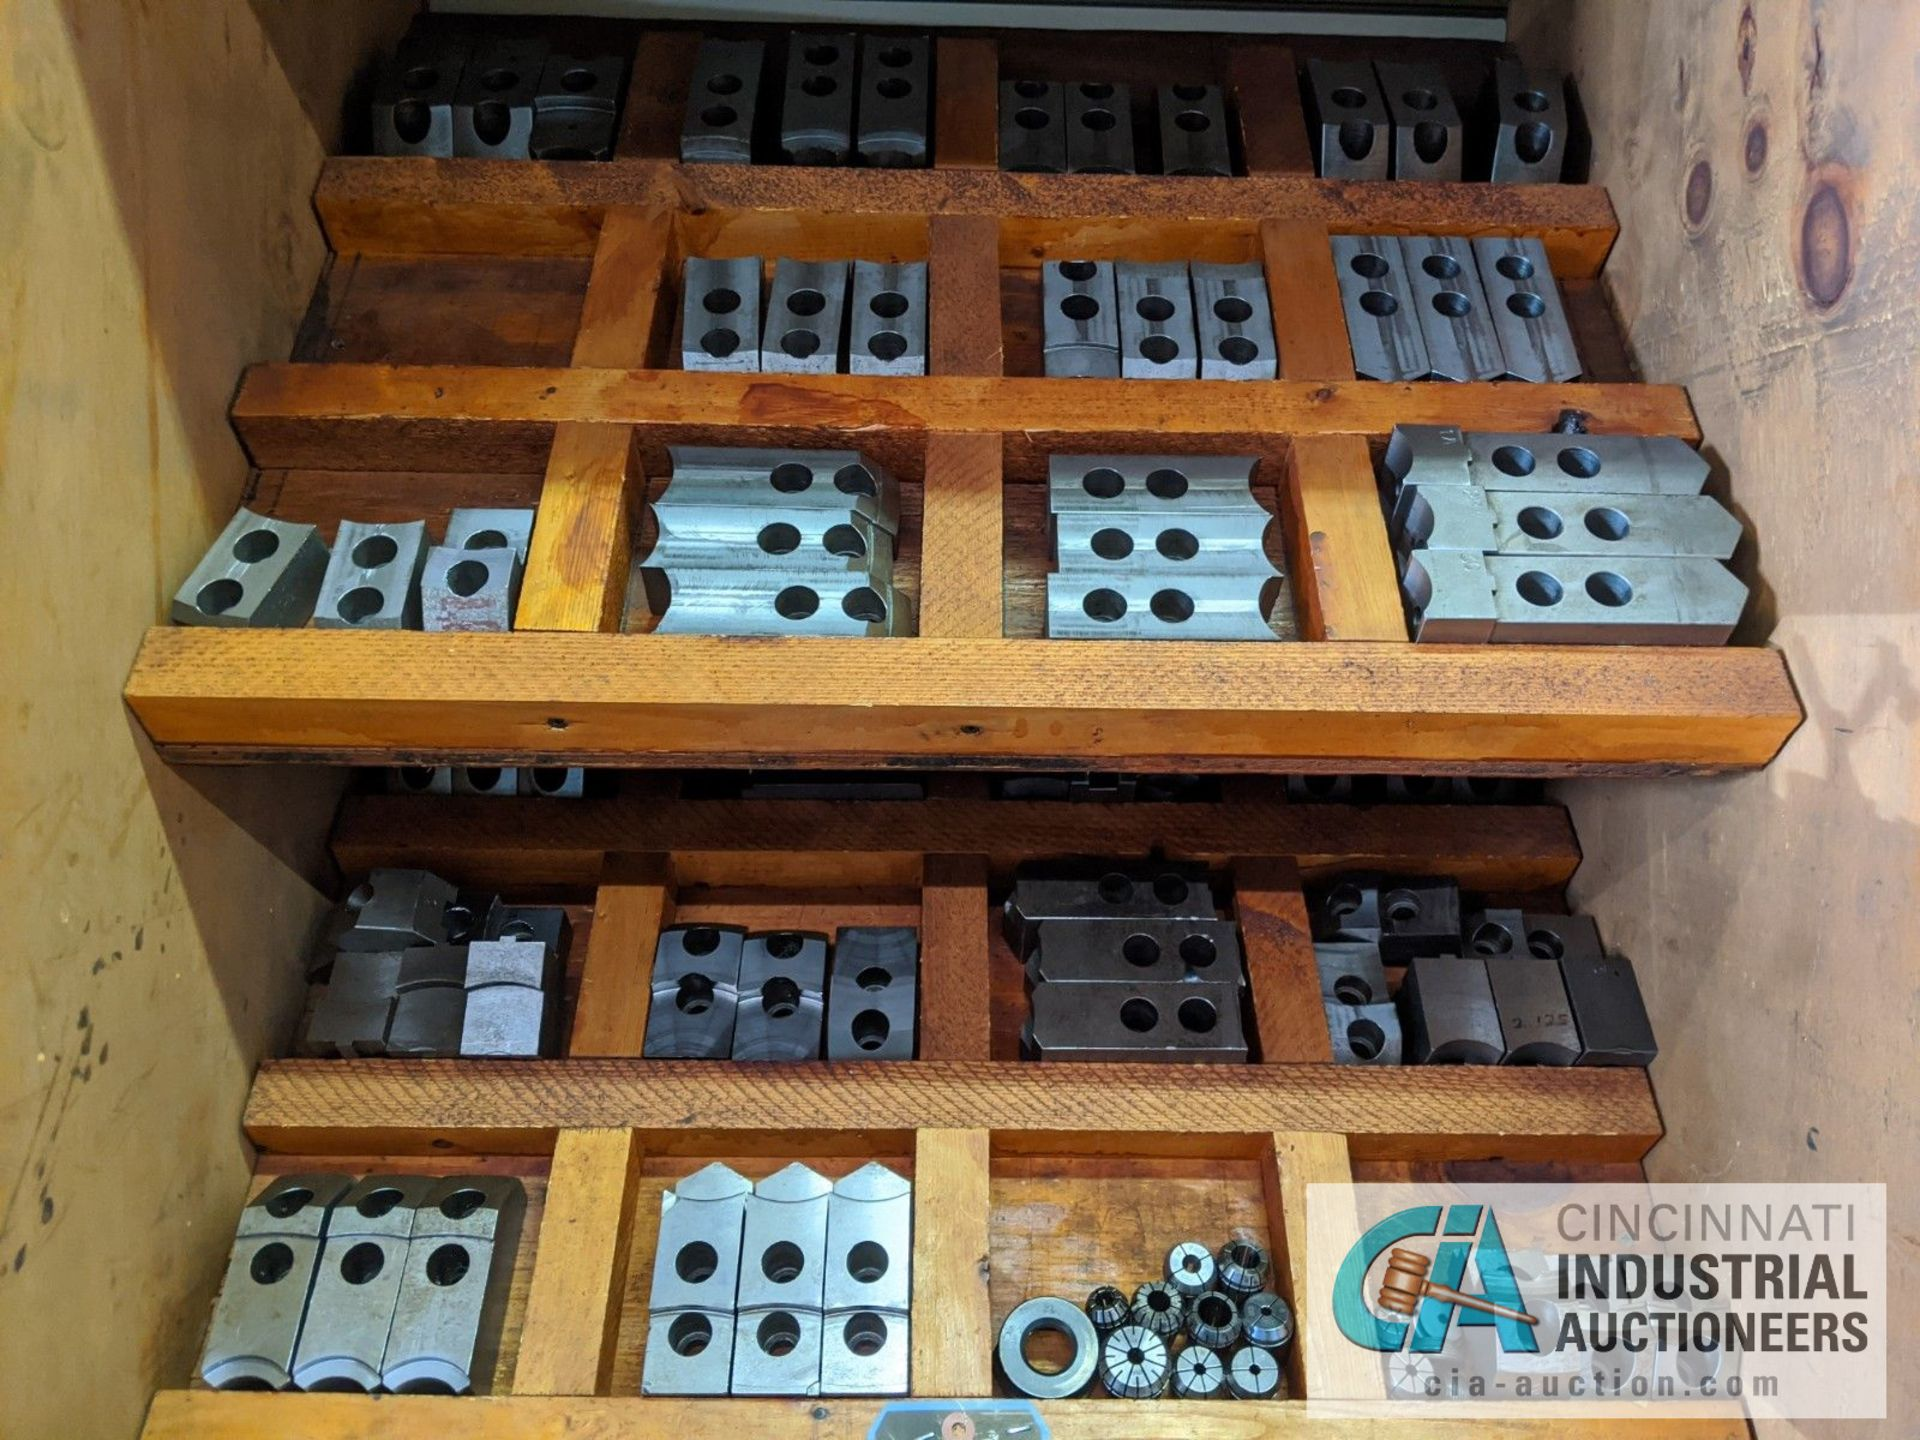 (LOT) CABINET WITH LATHE TOOLING; CHUCK JAWS, COLLETS, SLEEVES, COLLARS - Image 4 of 5